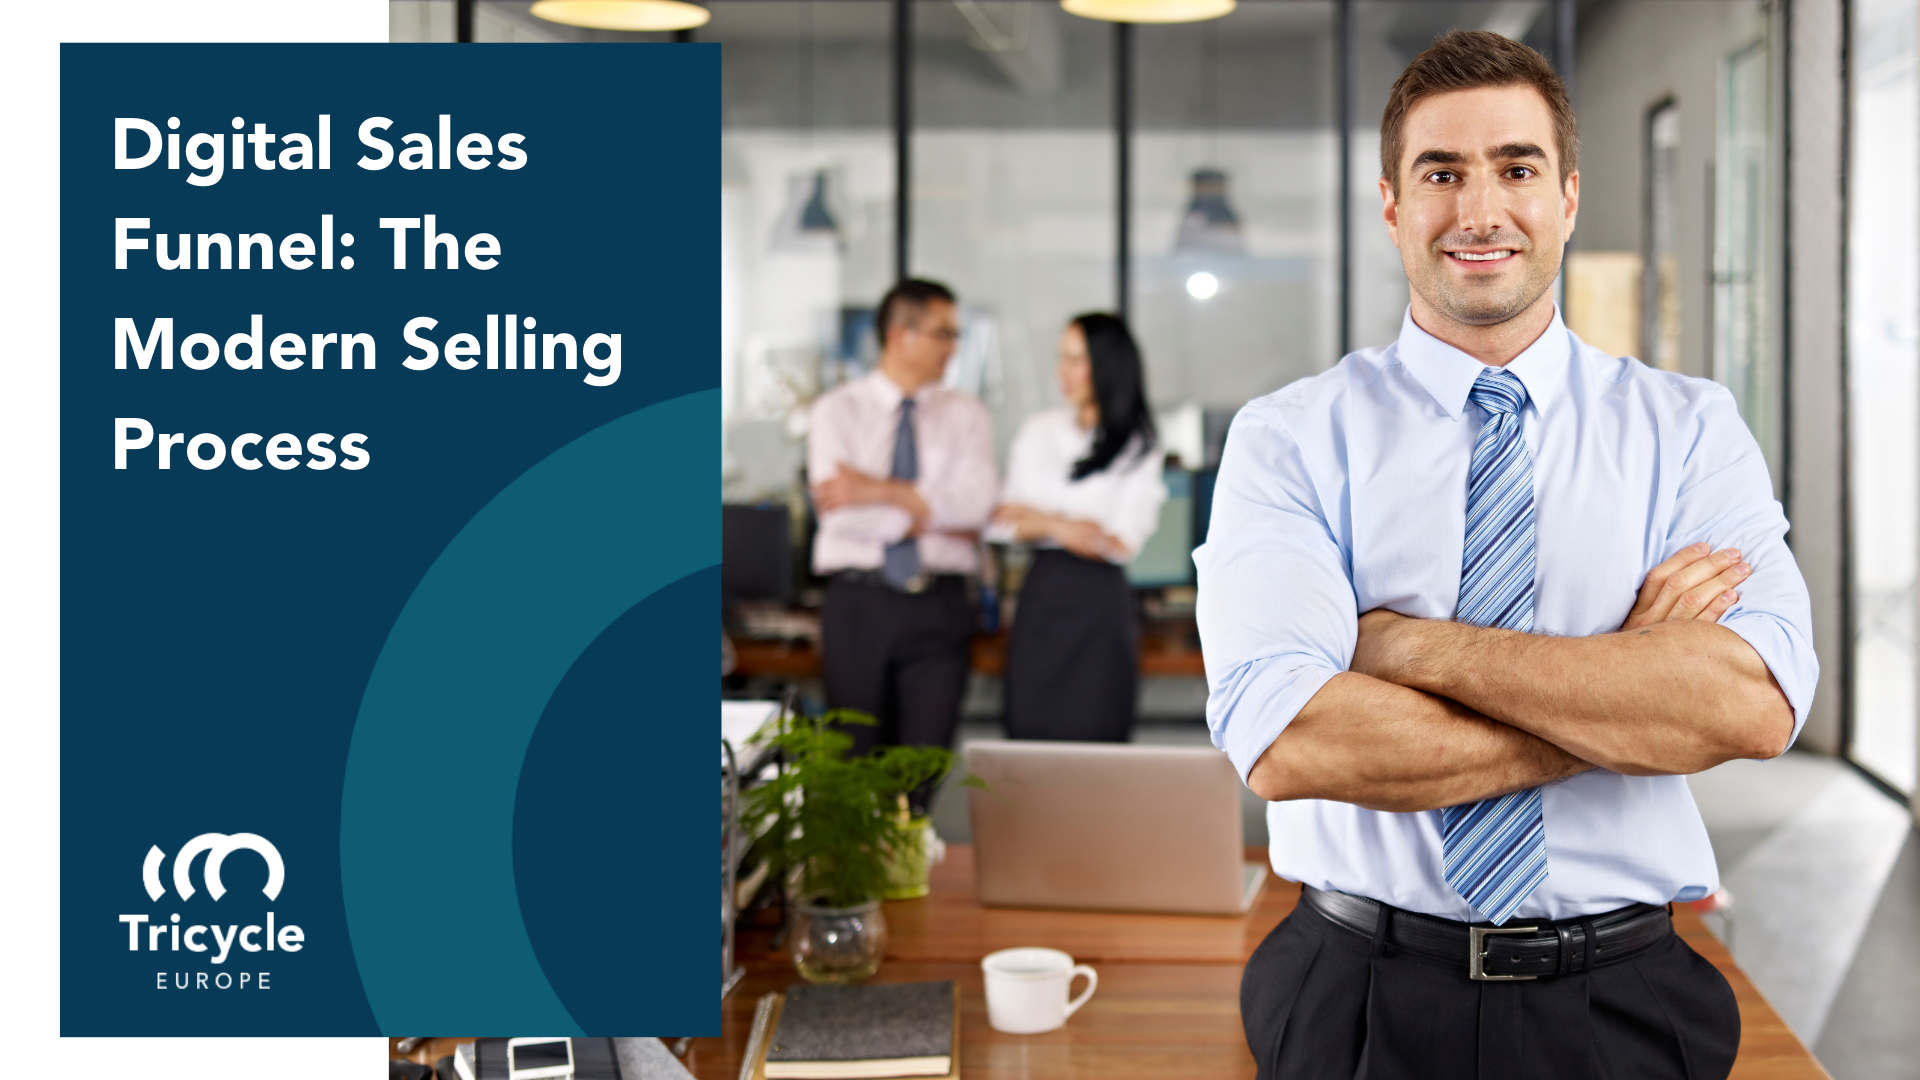 Digital Sales Funnel: The Modern Selling Process